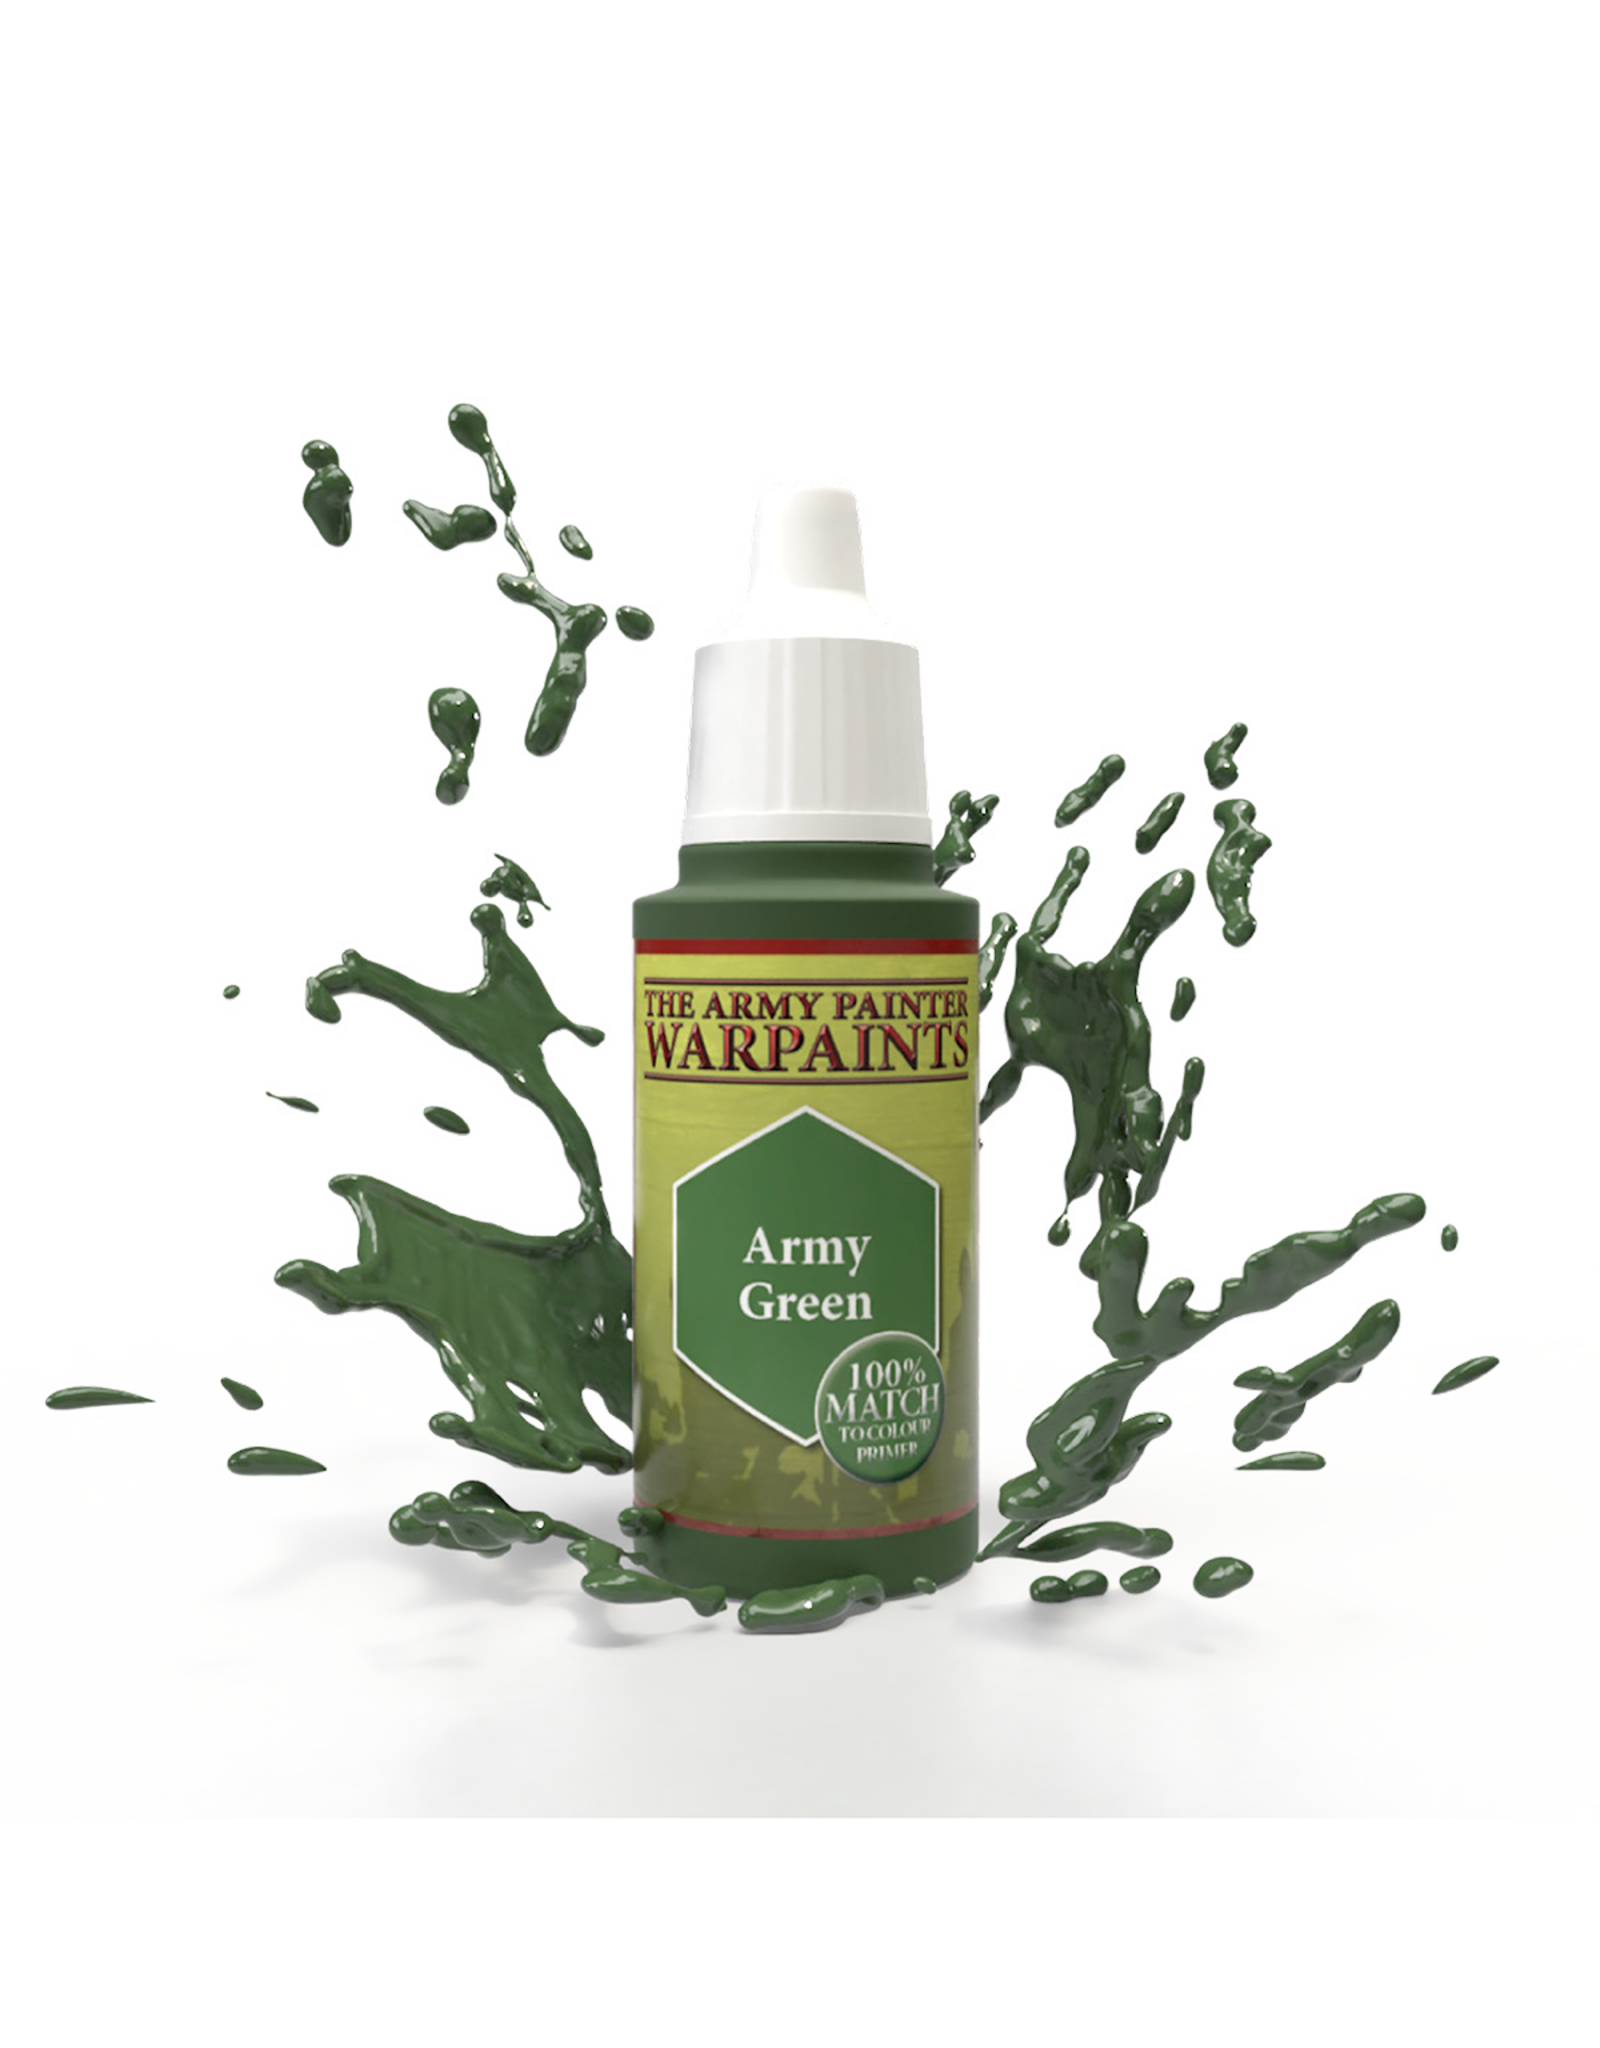 THE ARMY PAINTER ARMY PAINTER WARPAINTS ARMY GREEN